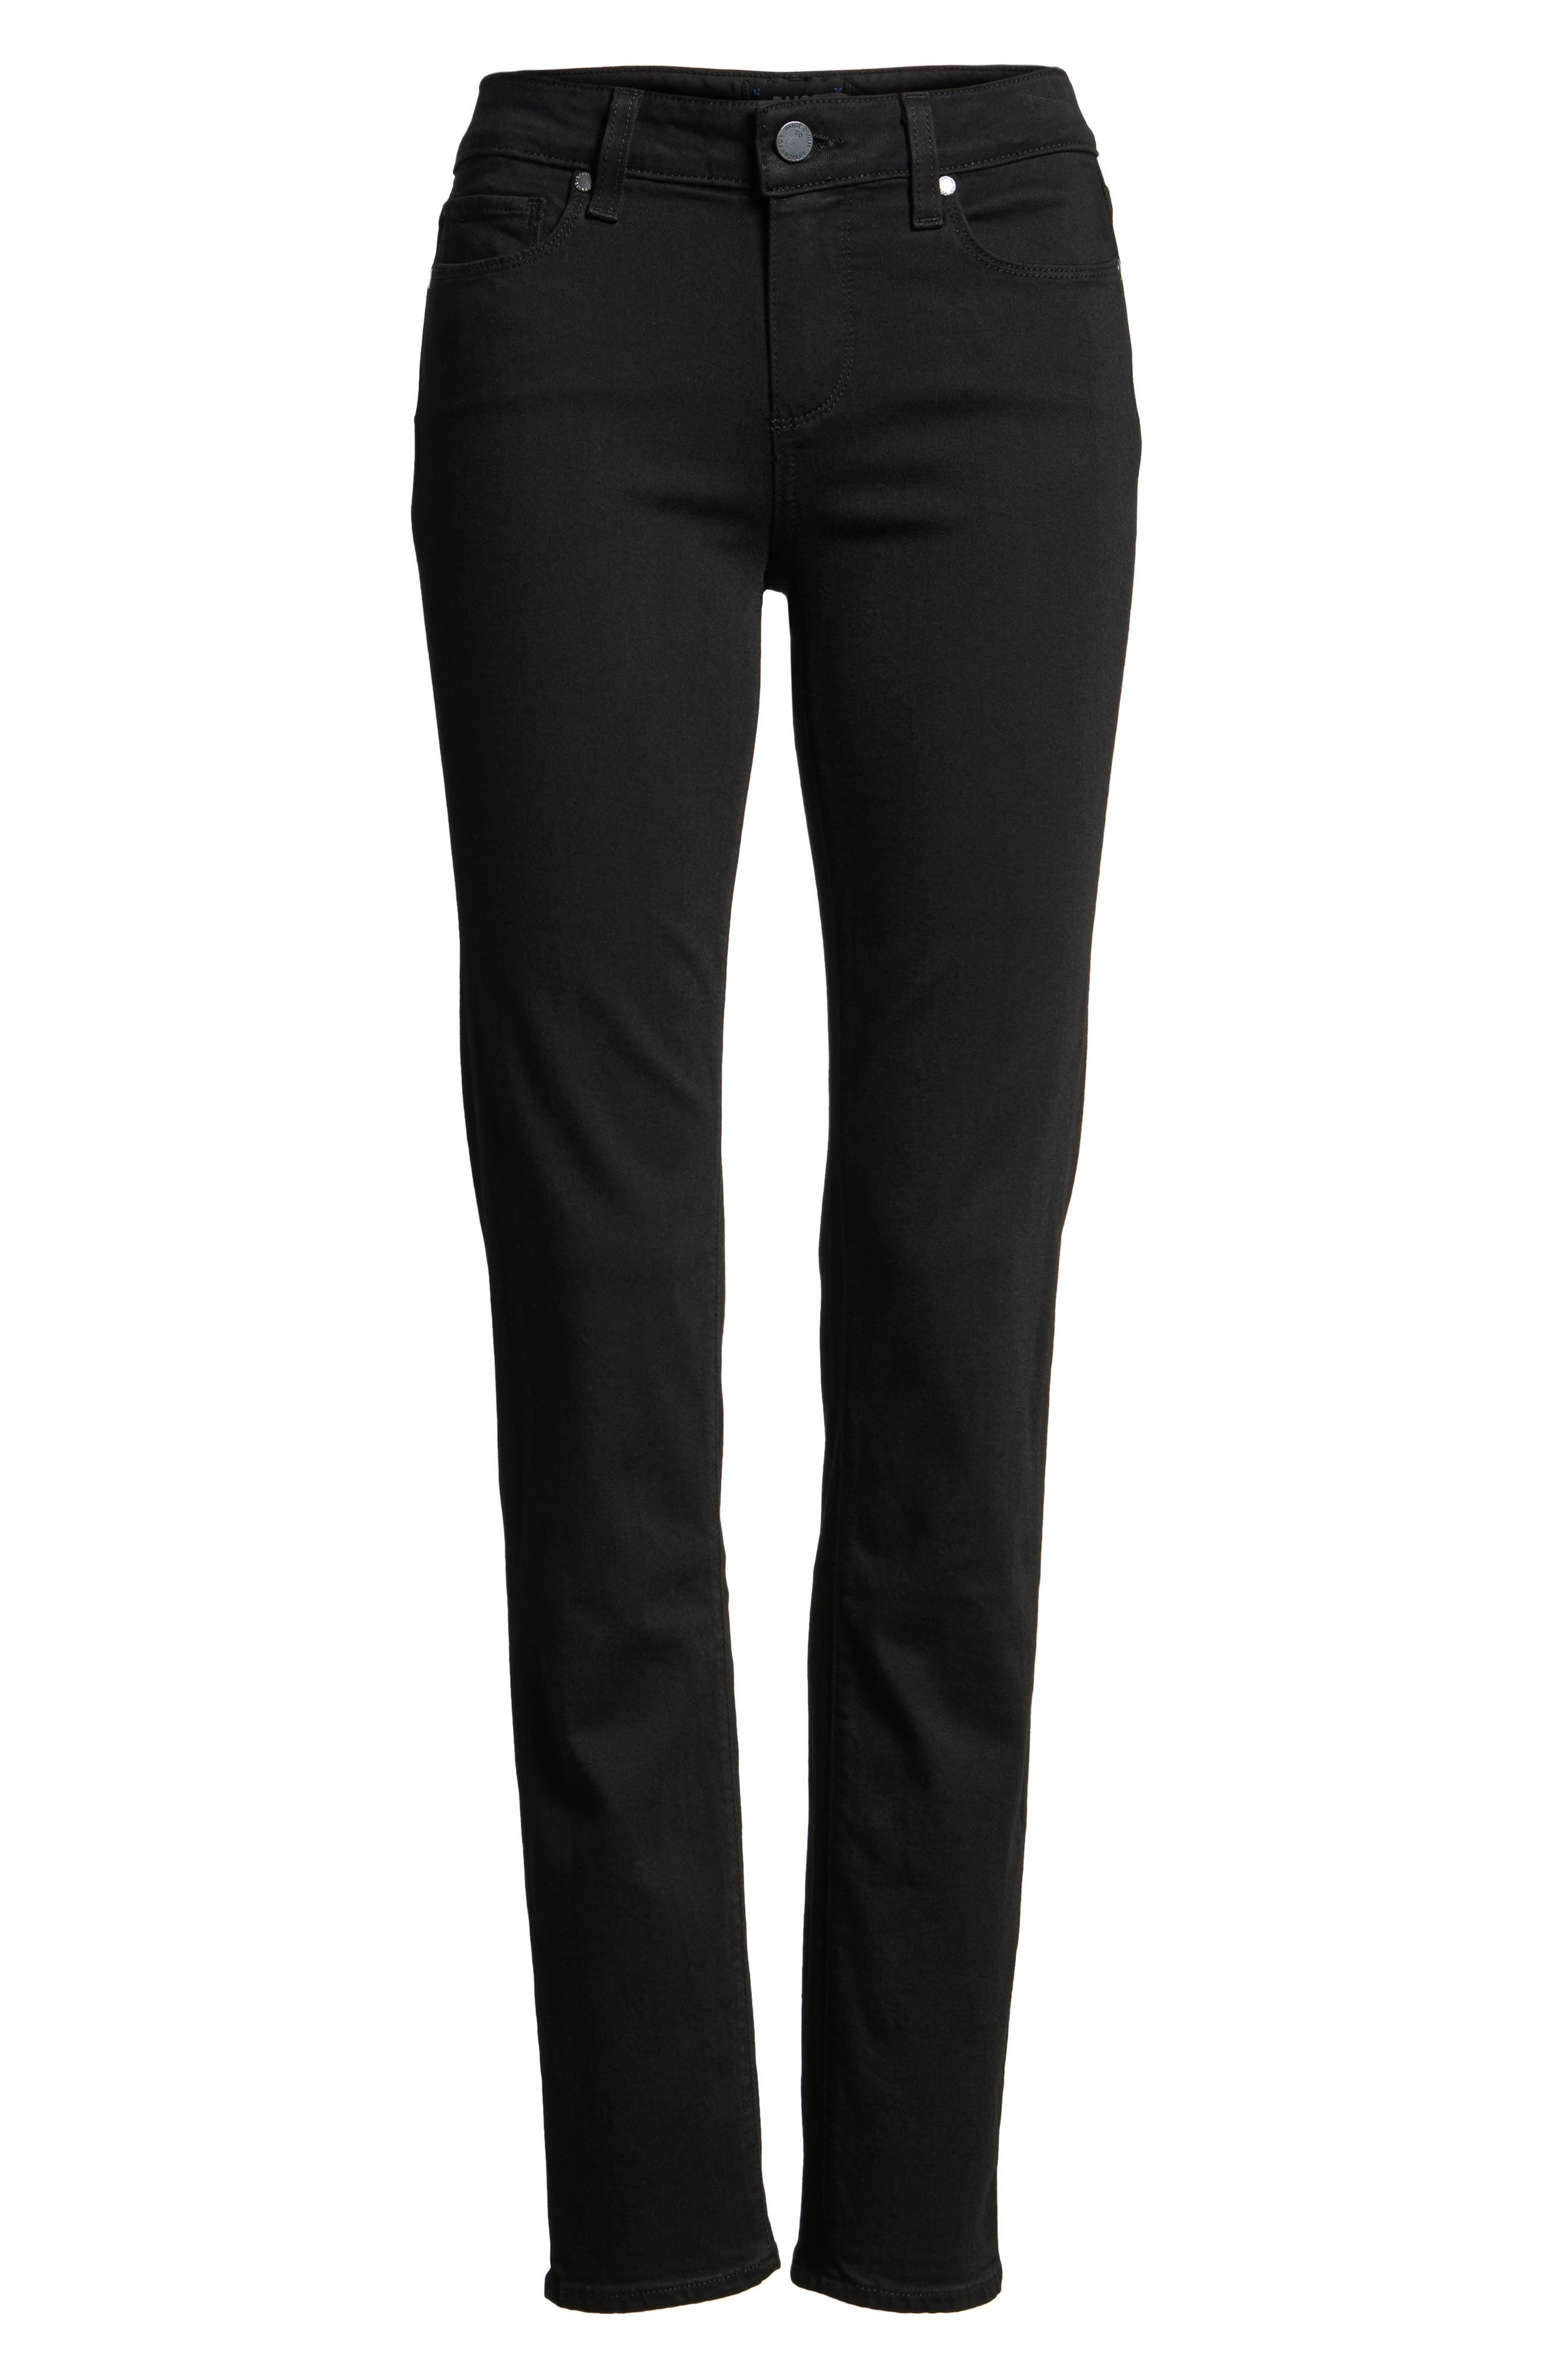 PAIGE, Transcend - Skyline Skinny Jeans, Alternate thumbnail 9, color, BLACK SHADOW